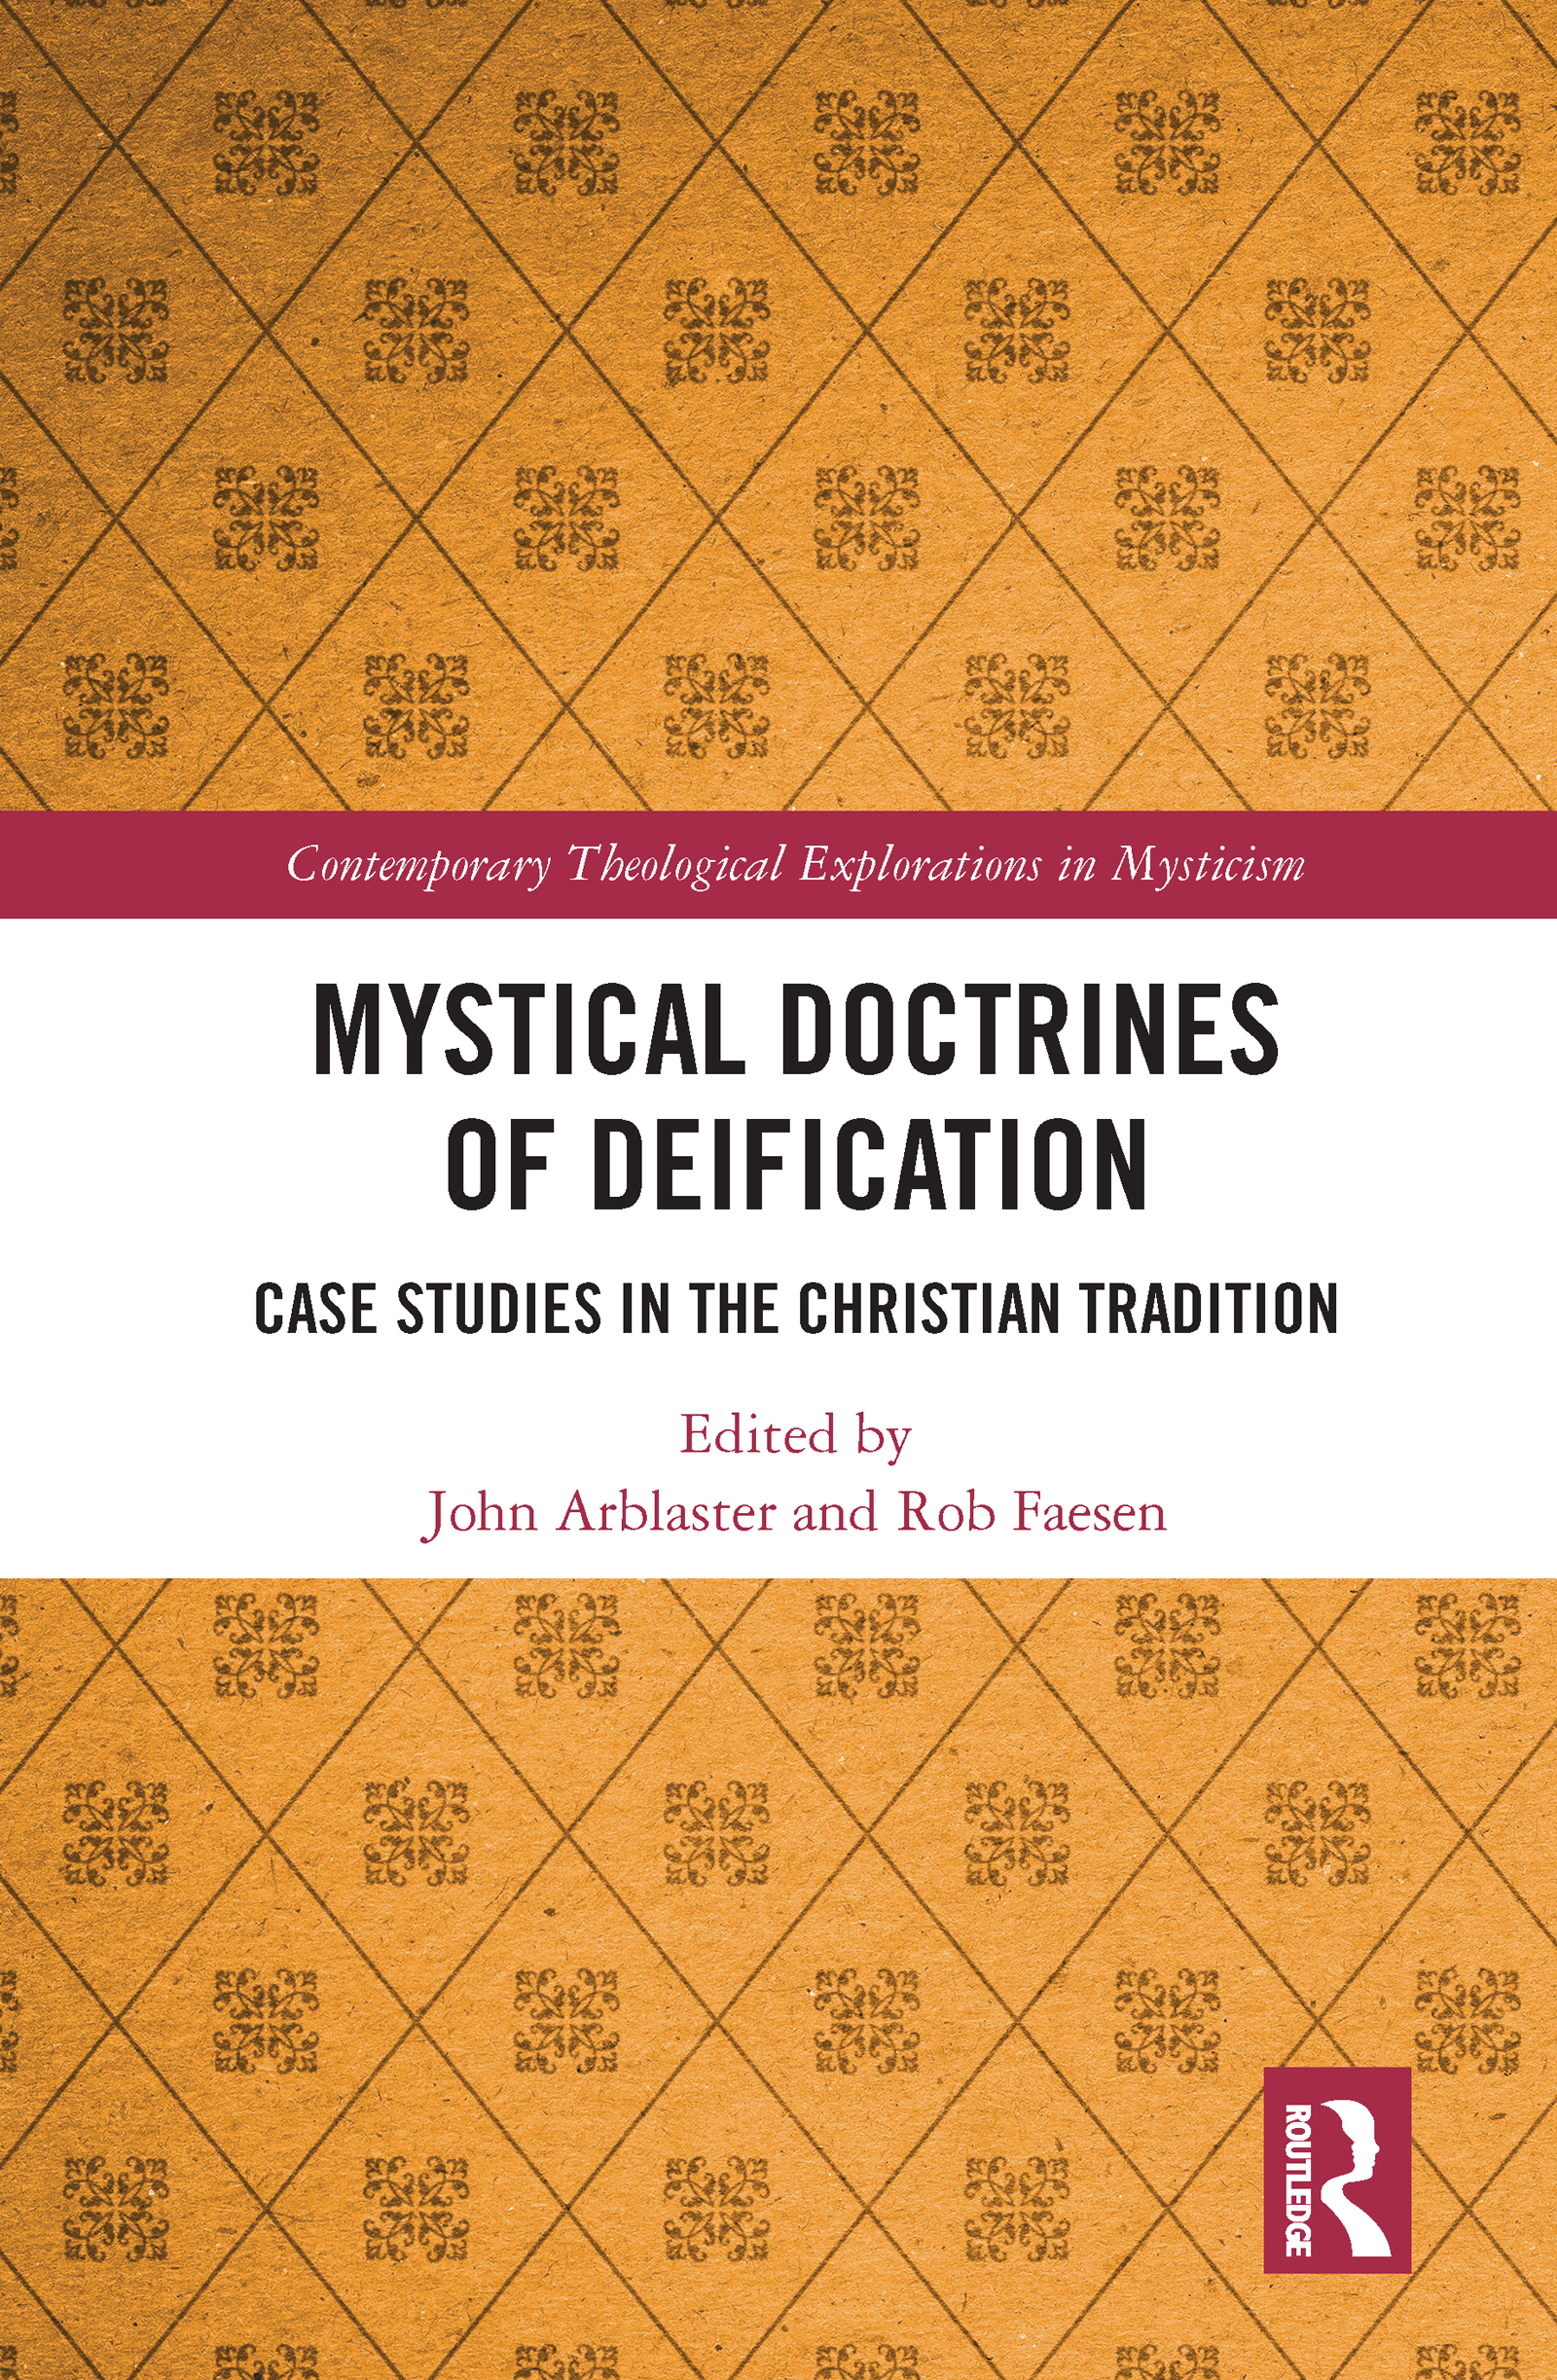 Mystical Doctrines of Deification